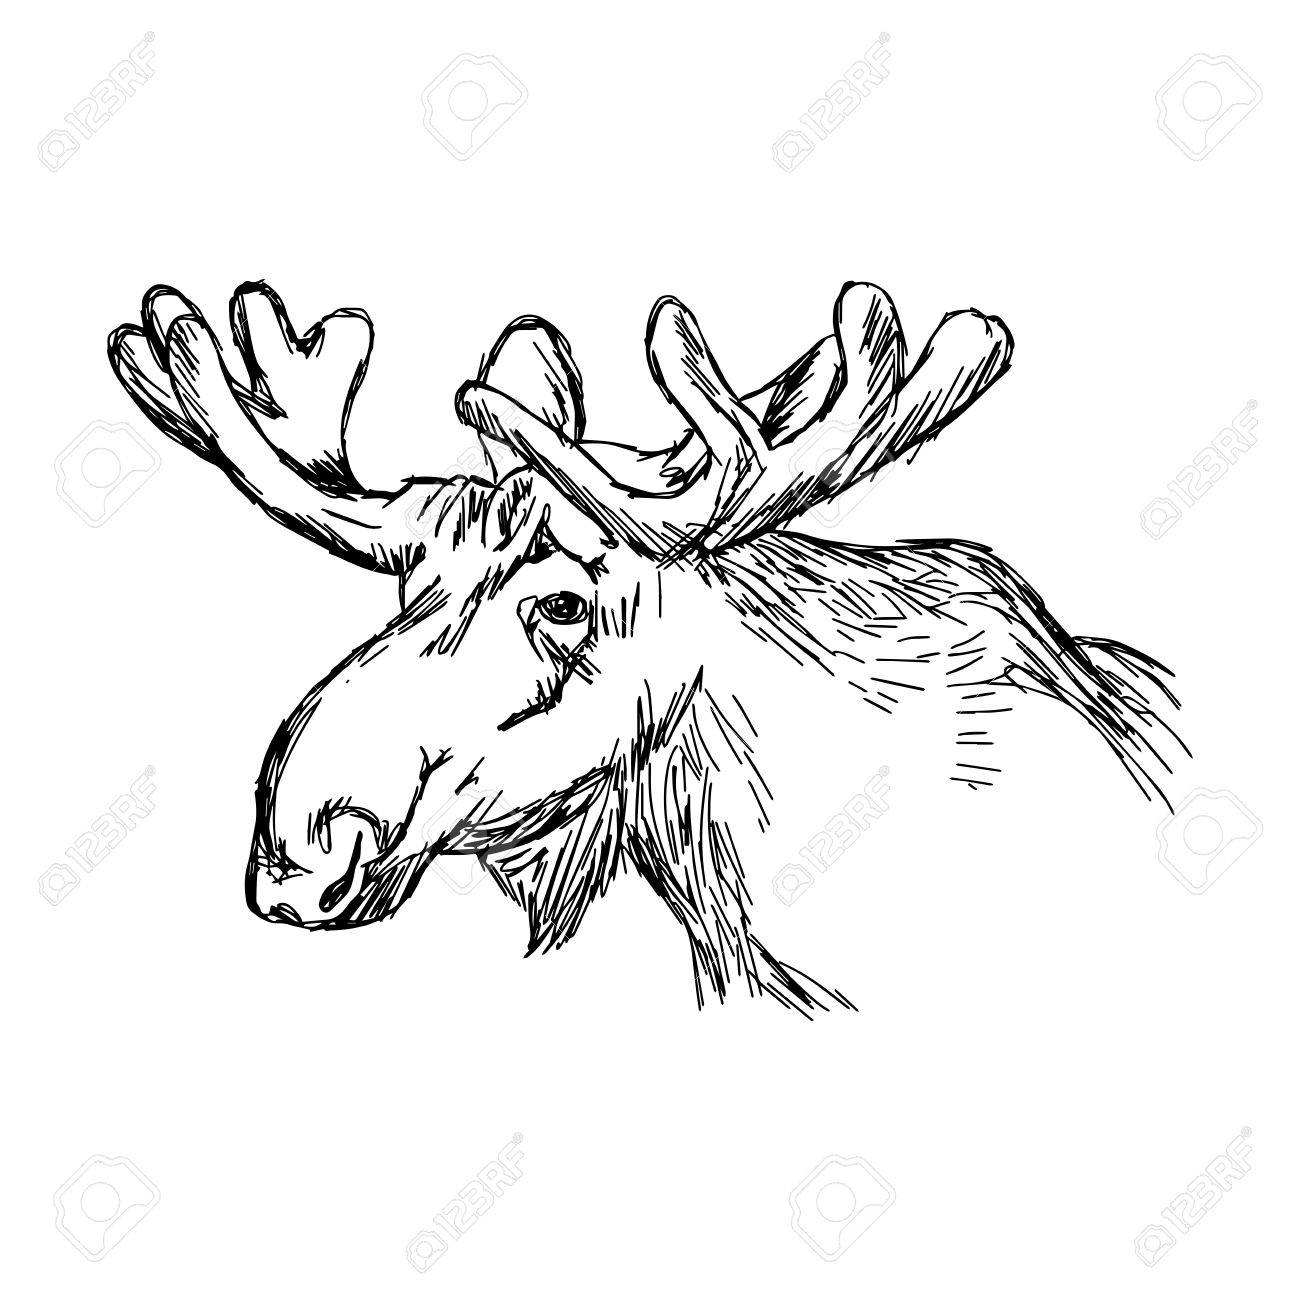 1300x1300 Illustration Doodle Of Sketch Moose Head Isolated On White